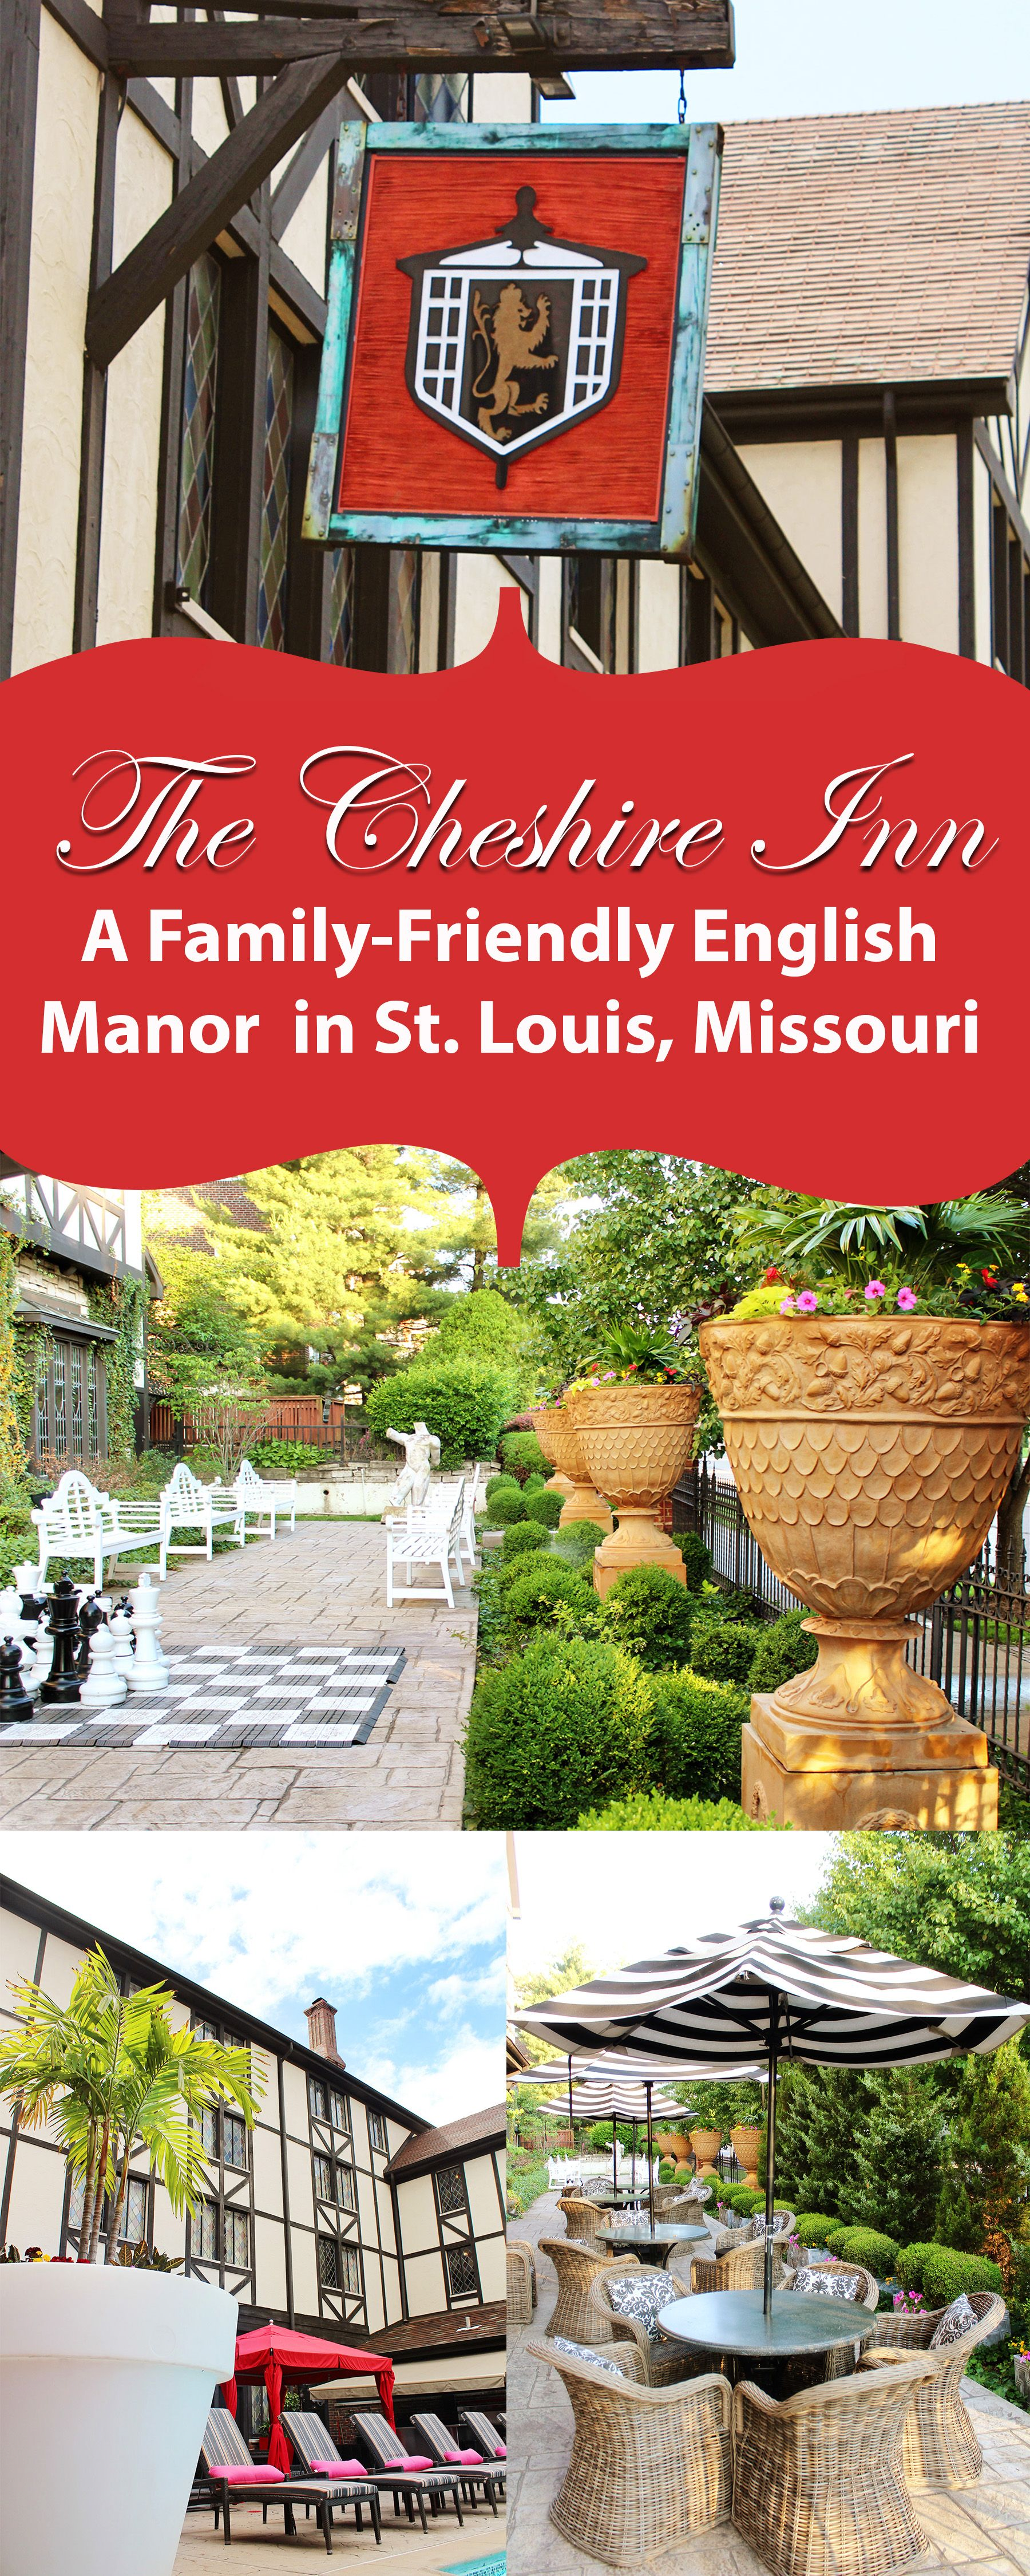 St Louis Missouri The Cheshire Inn